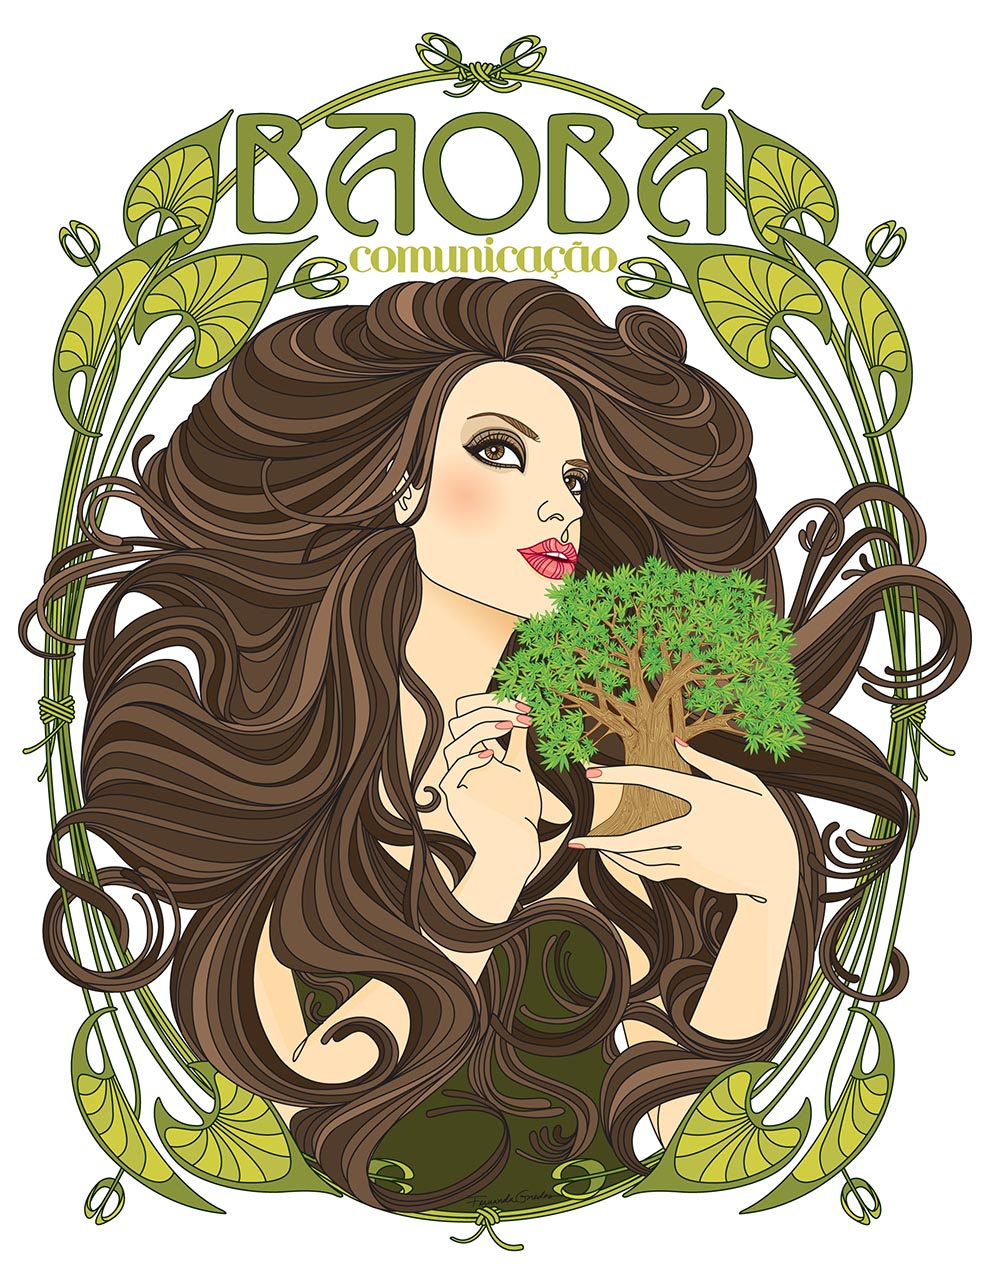 1000+ images about BAOBÁ on Pinterest.